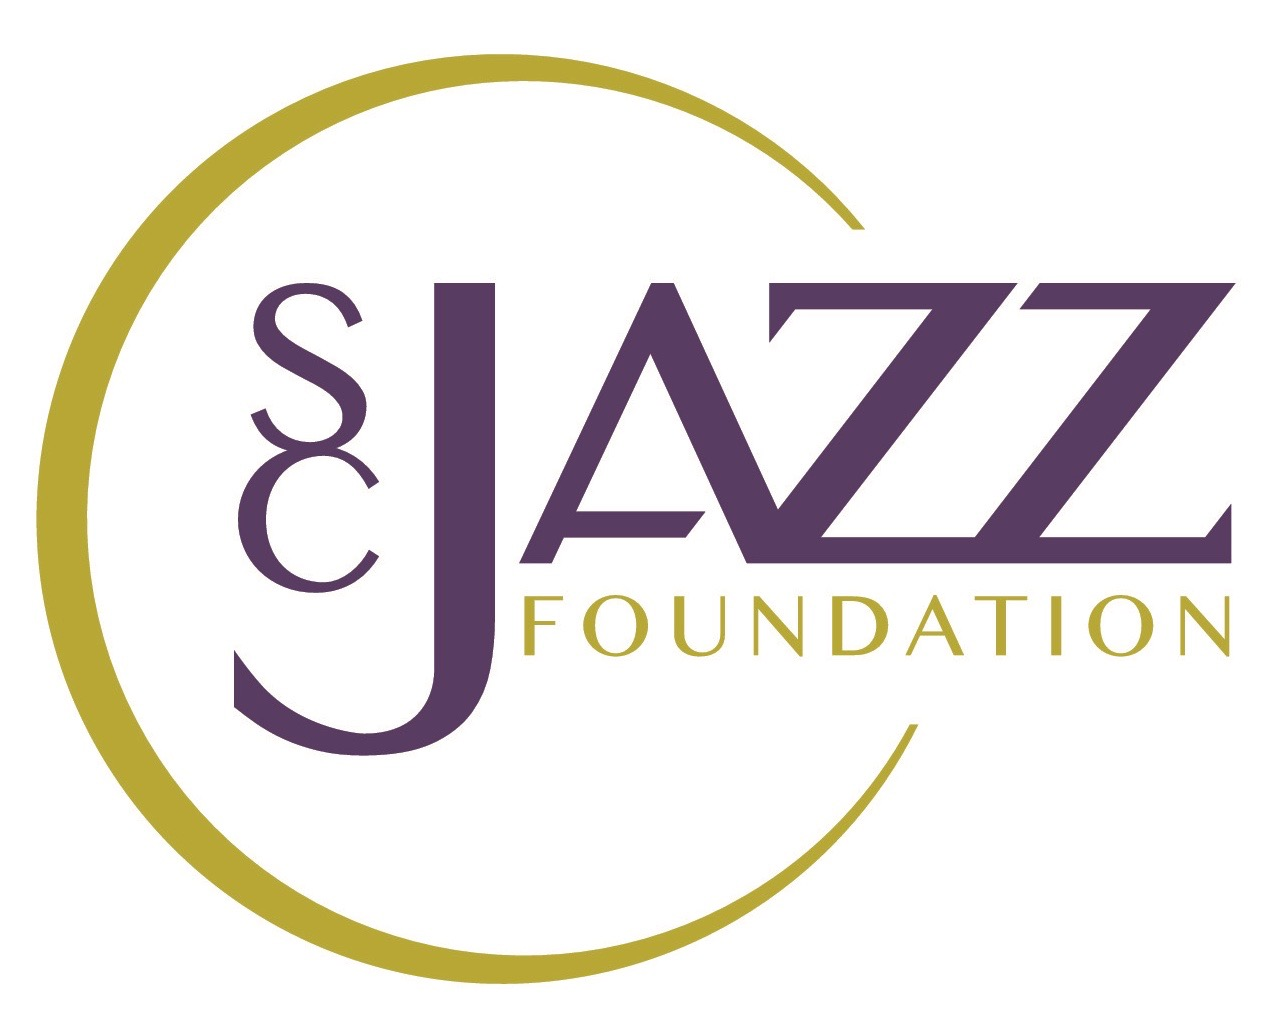 SC Jazz Foundation